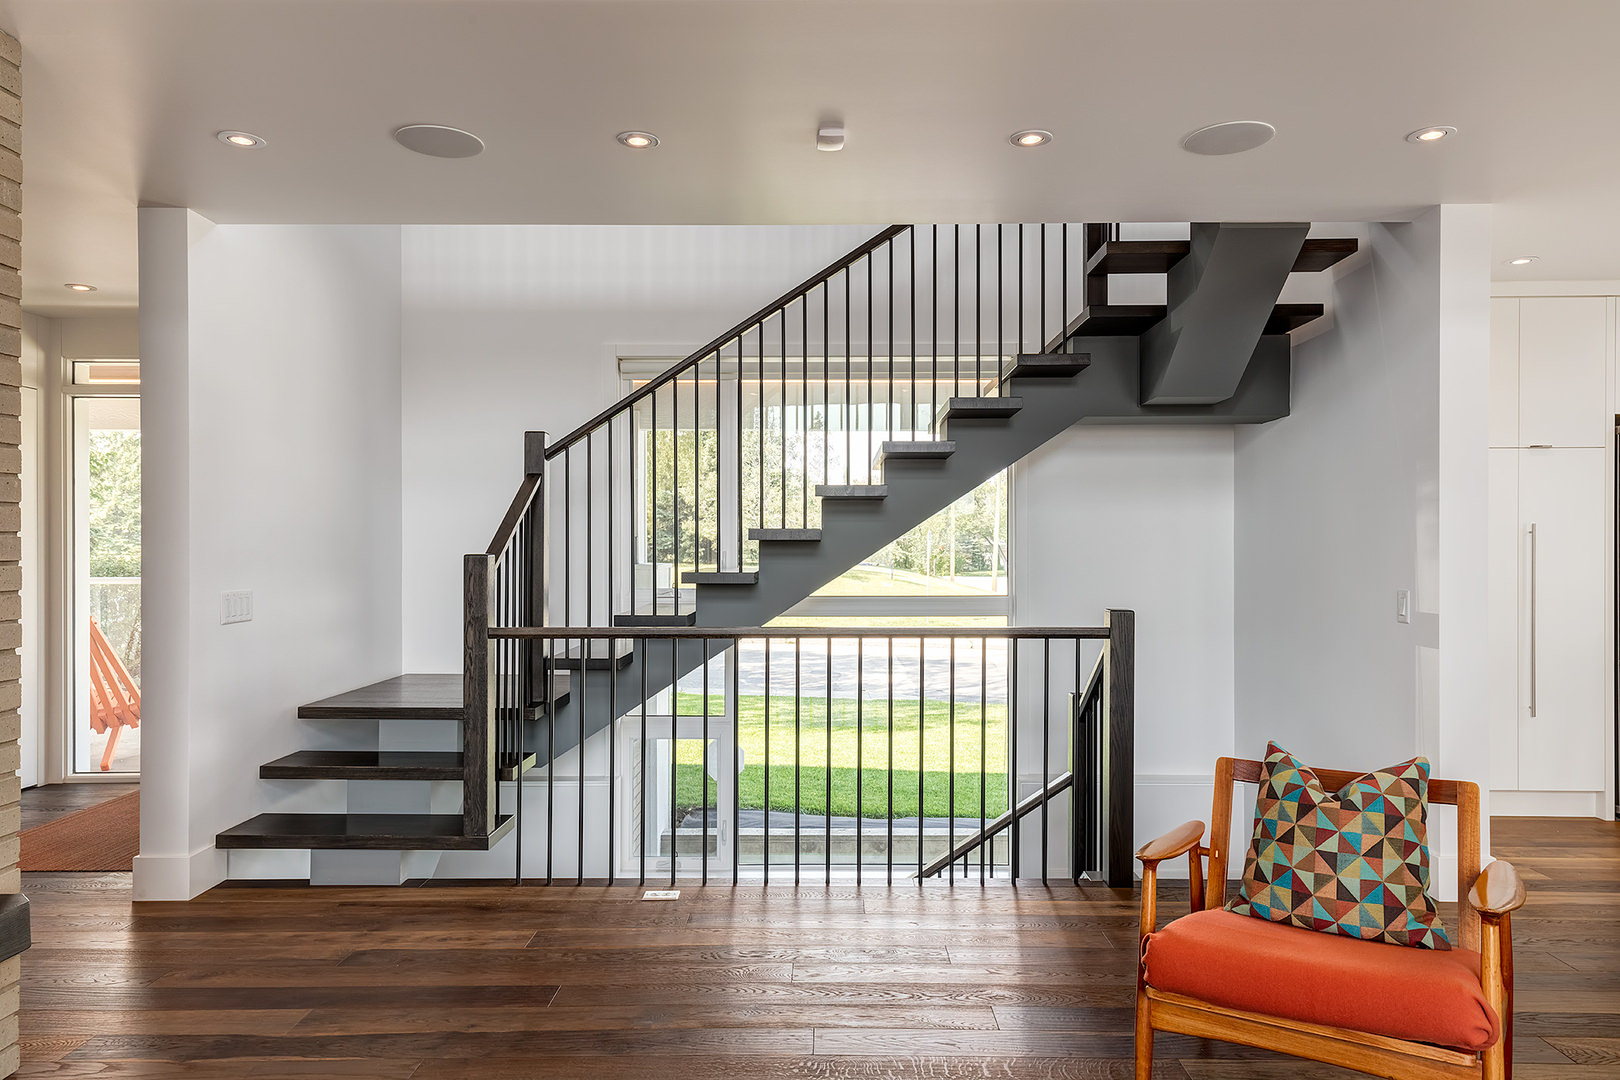 The staircase made of hardwood steps and railing is simple but stylish in its form. This could be considered a traditional wooden staircase retouched to a contemporary style.